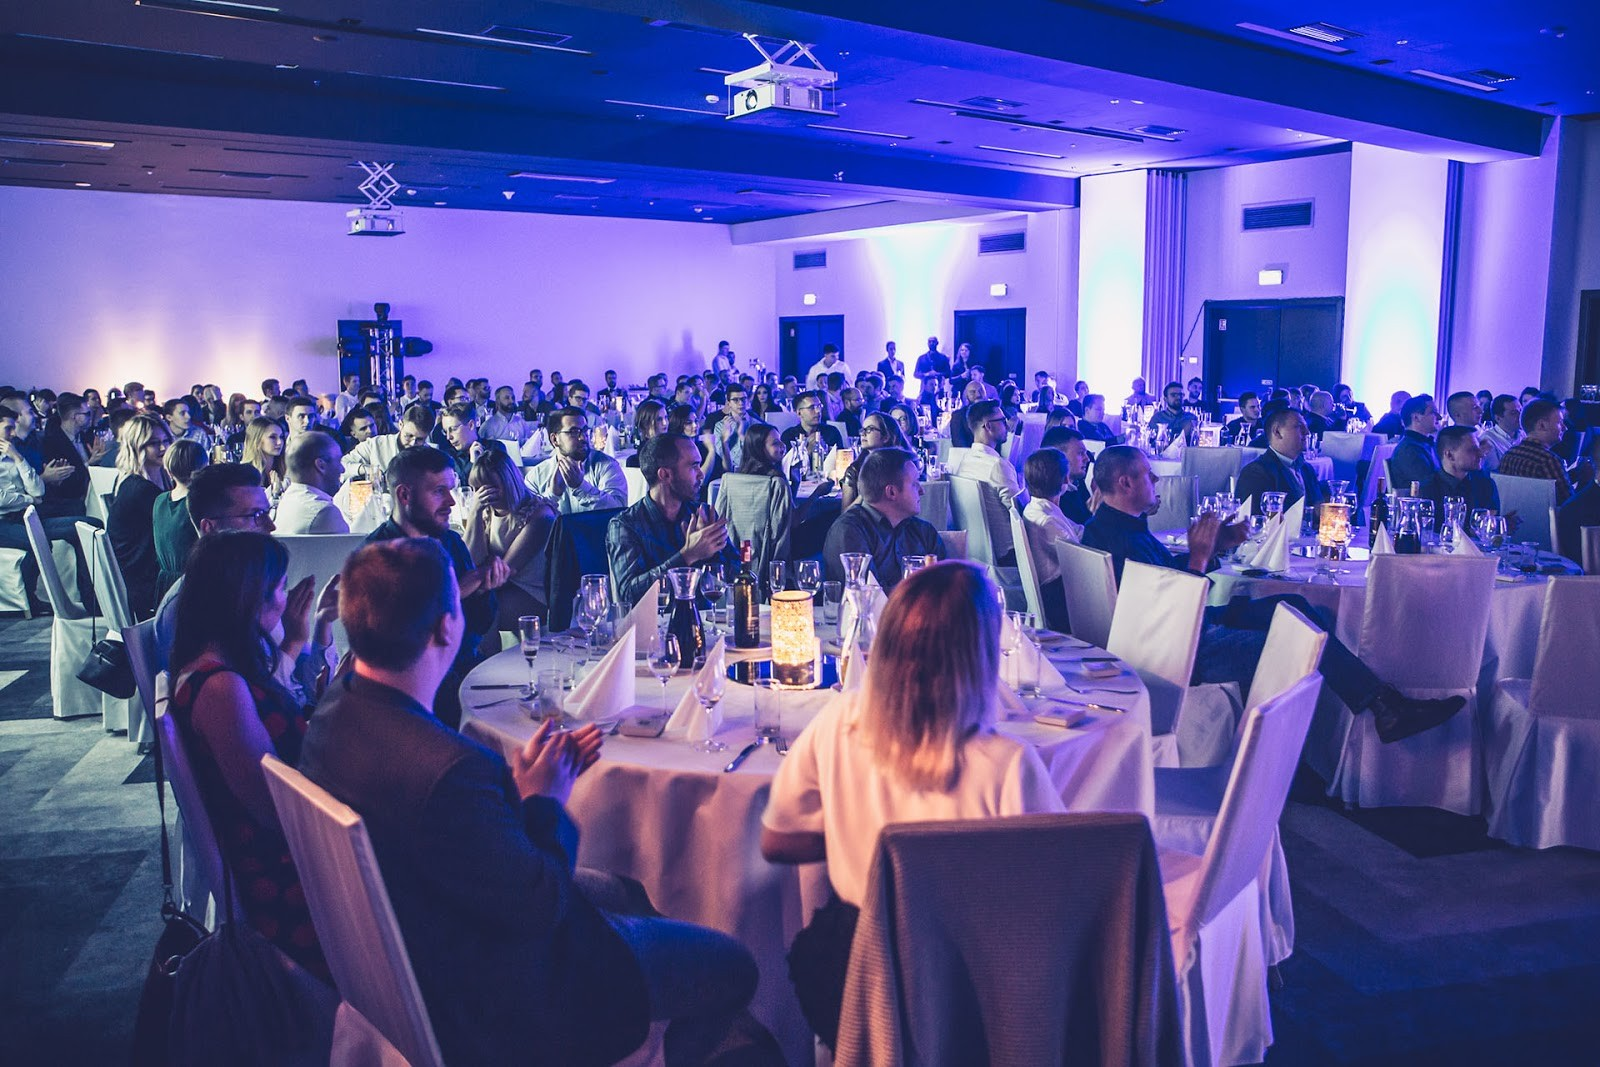 More than 200 people attended the Divante Winter Summit 2019 in Wrocław, Poland, the company's hometown. Photo: Sławek Przerwa